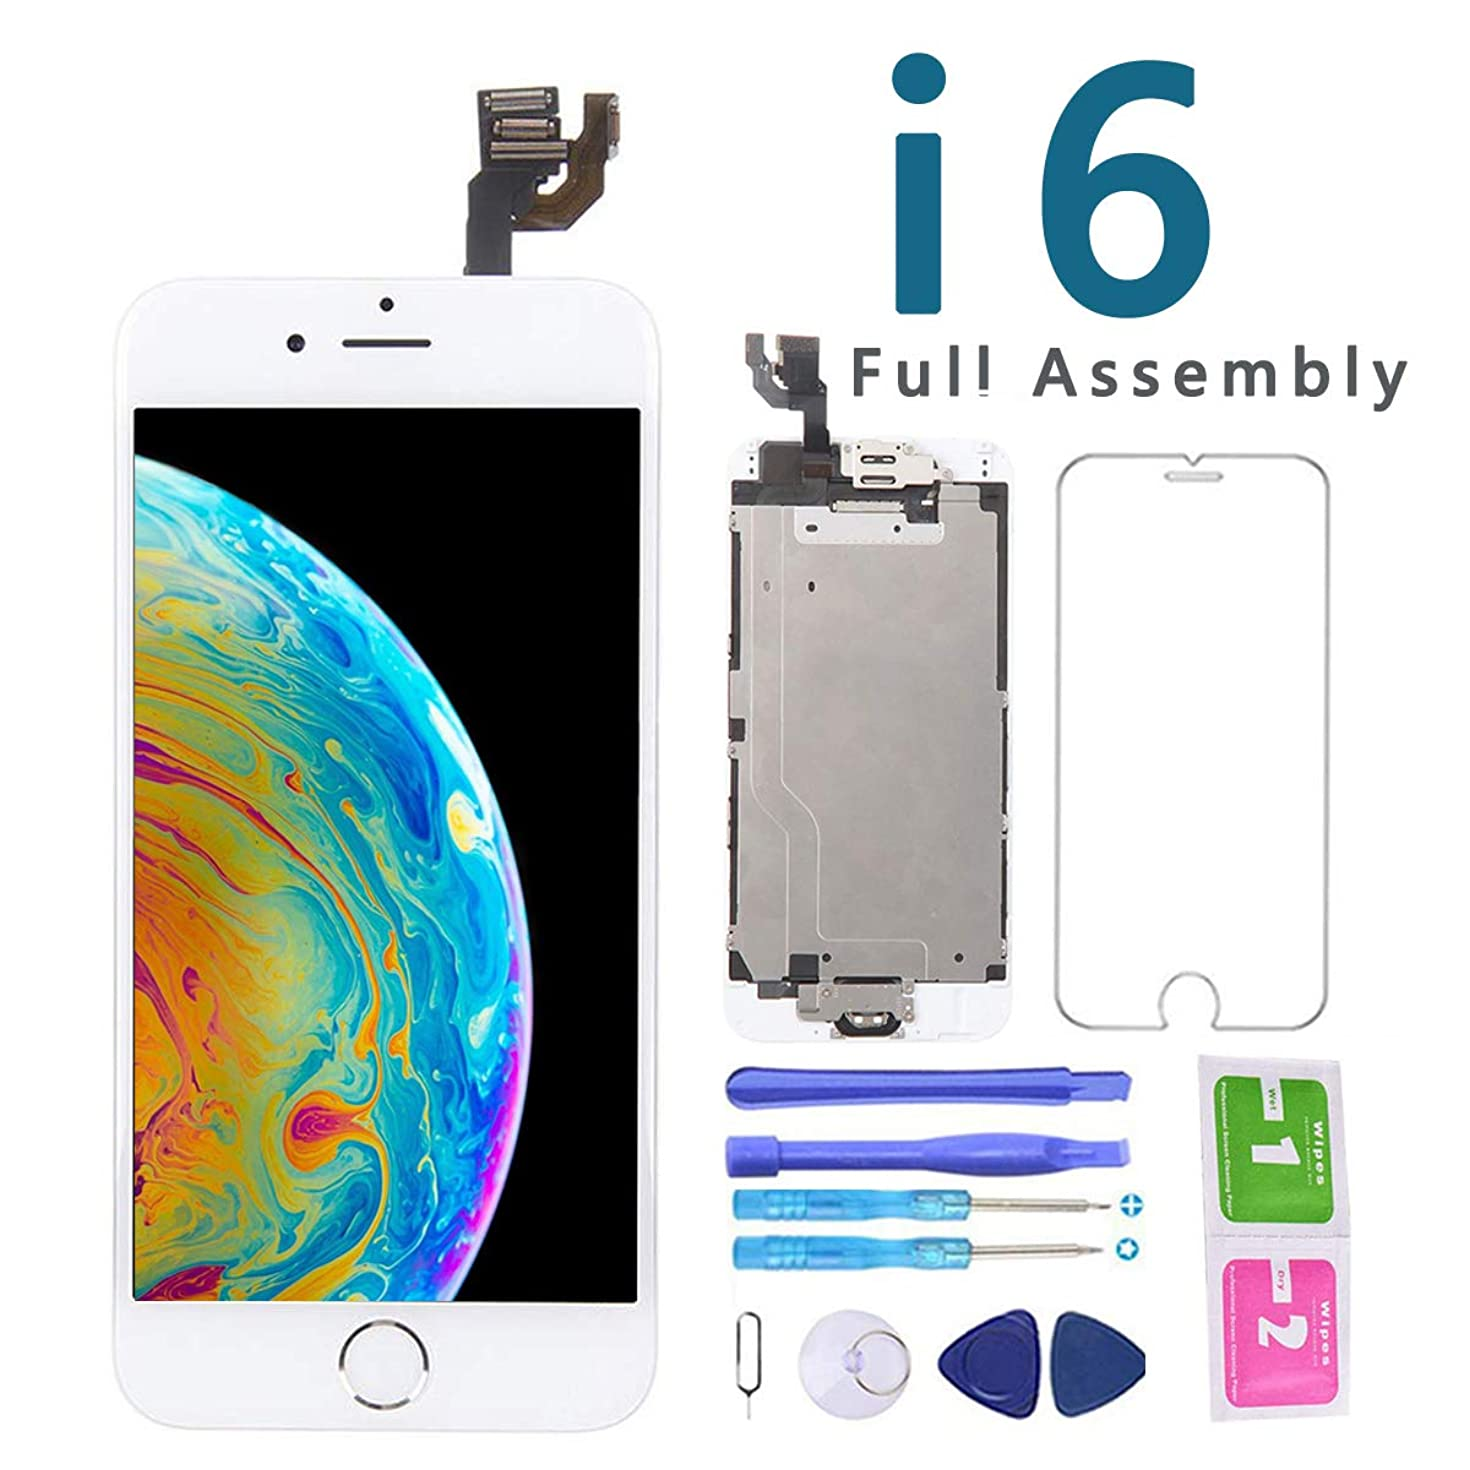 Screen Replacement for iPhone 6 White 4.7 Inch LCD Display Touch Digitizer Full Assembly Repair Kit, with Home Button, Proximity Sensor, Earpiece, Front Camera, Screen Protector, Repair Tools